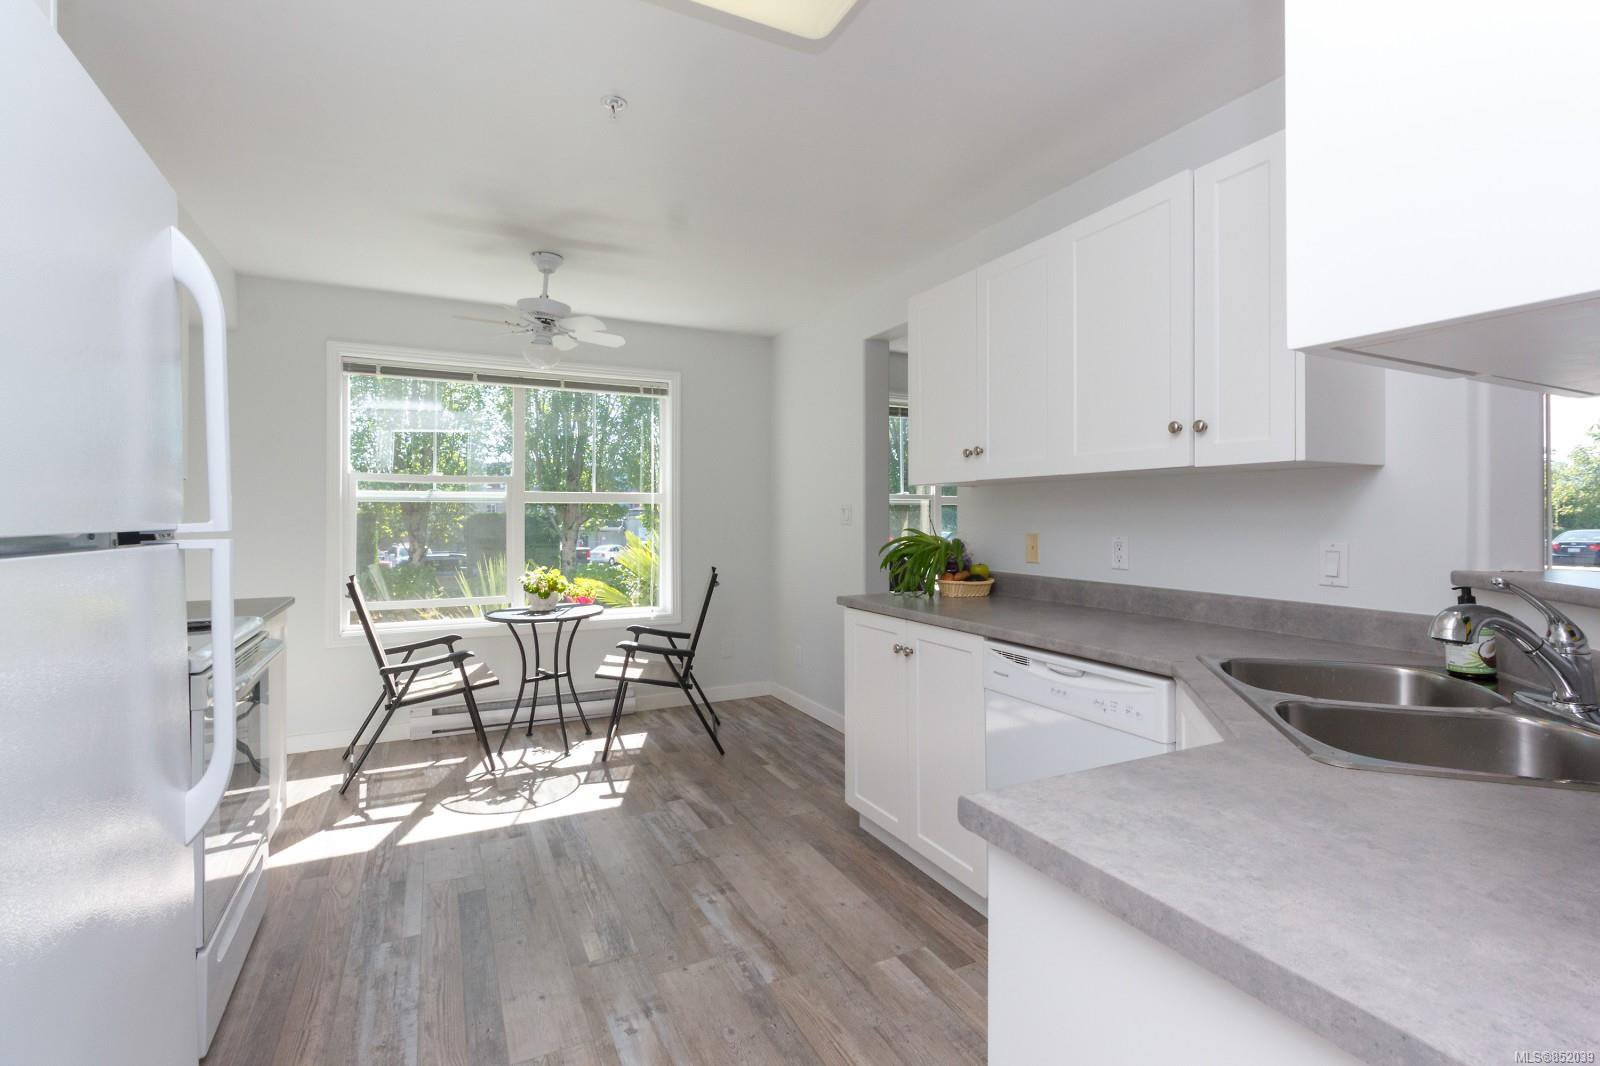 Photo 10: Photos: 109 1240 Verdier Ave in : CS Brentwood Bay Condo for sale (Central Saanich)  : MLS®# 852039